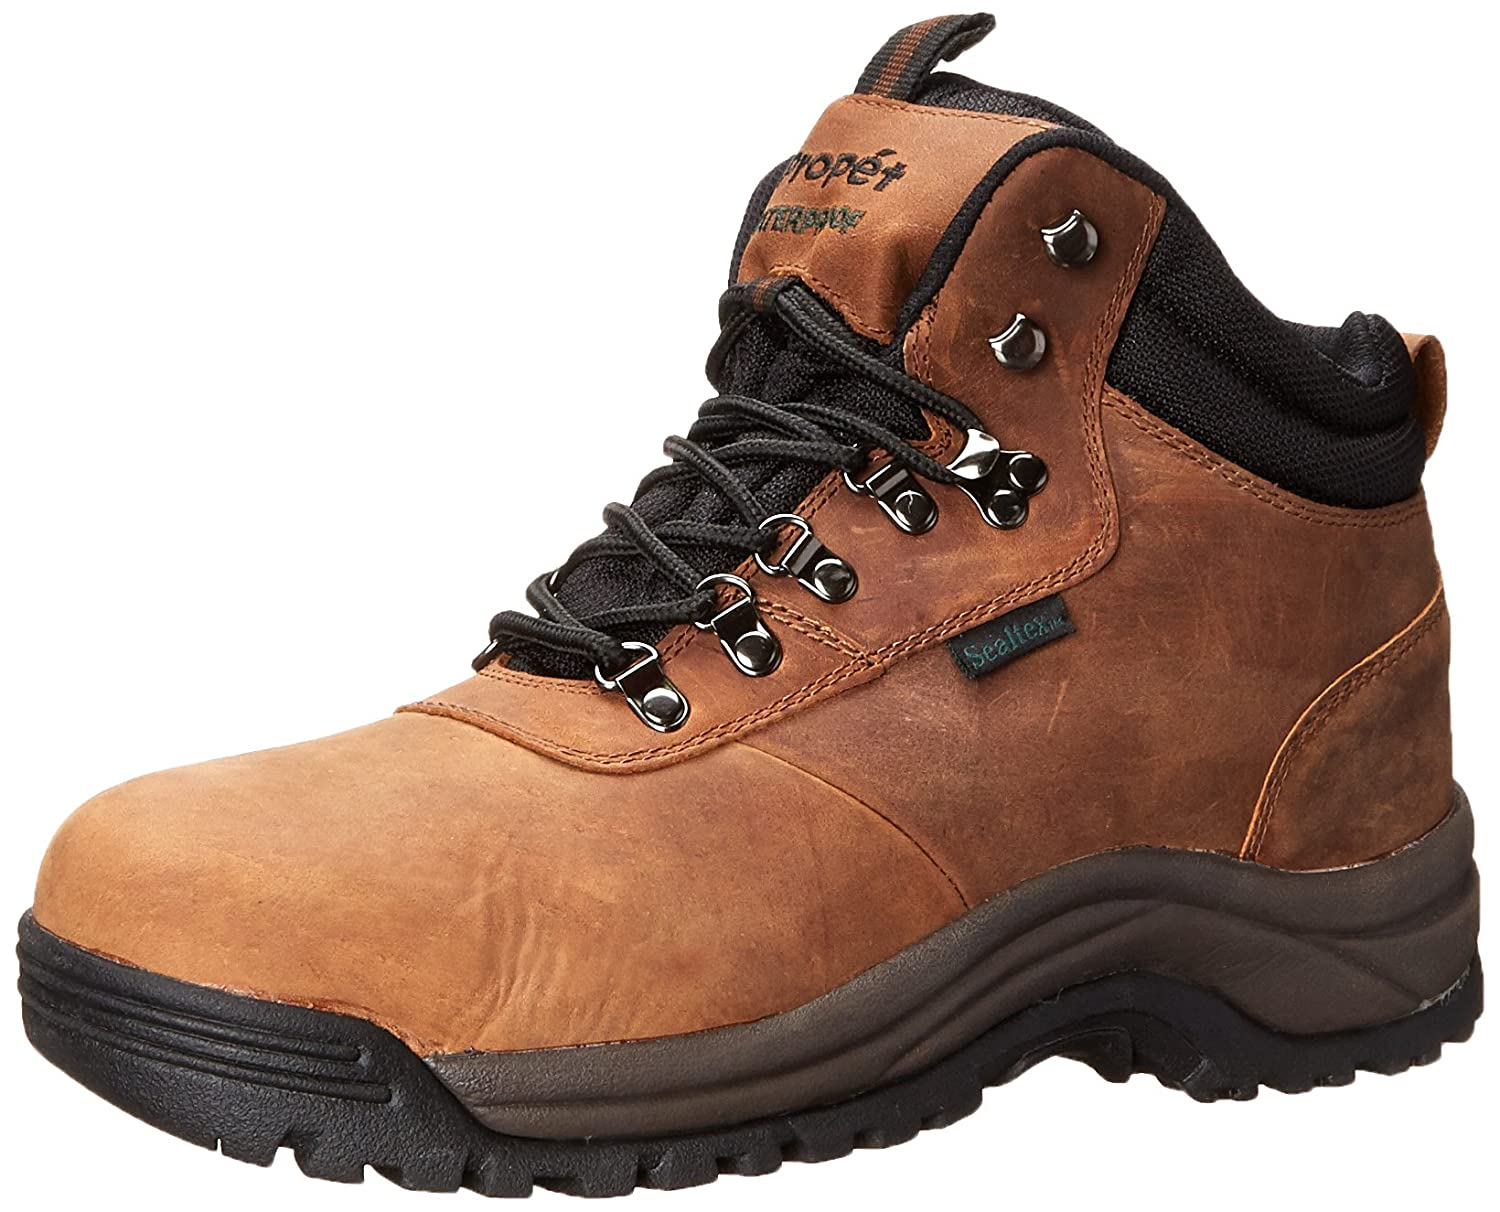 Propét Mens Cliff Walker Closed Toe Leather Fashion Boots B000P3RXFC 16 D(M) US|ブラウンヌバック ブラウンヌバック 16 D(M) US